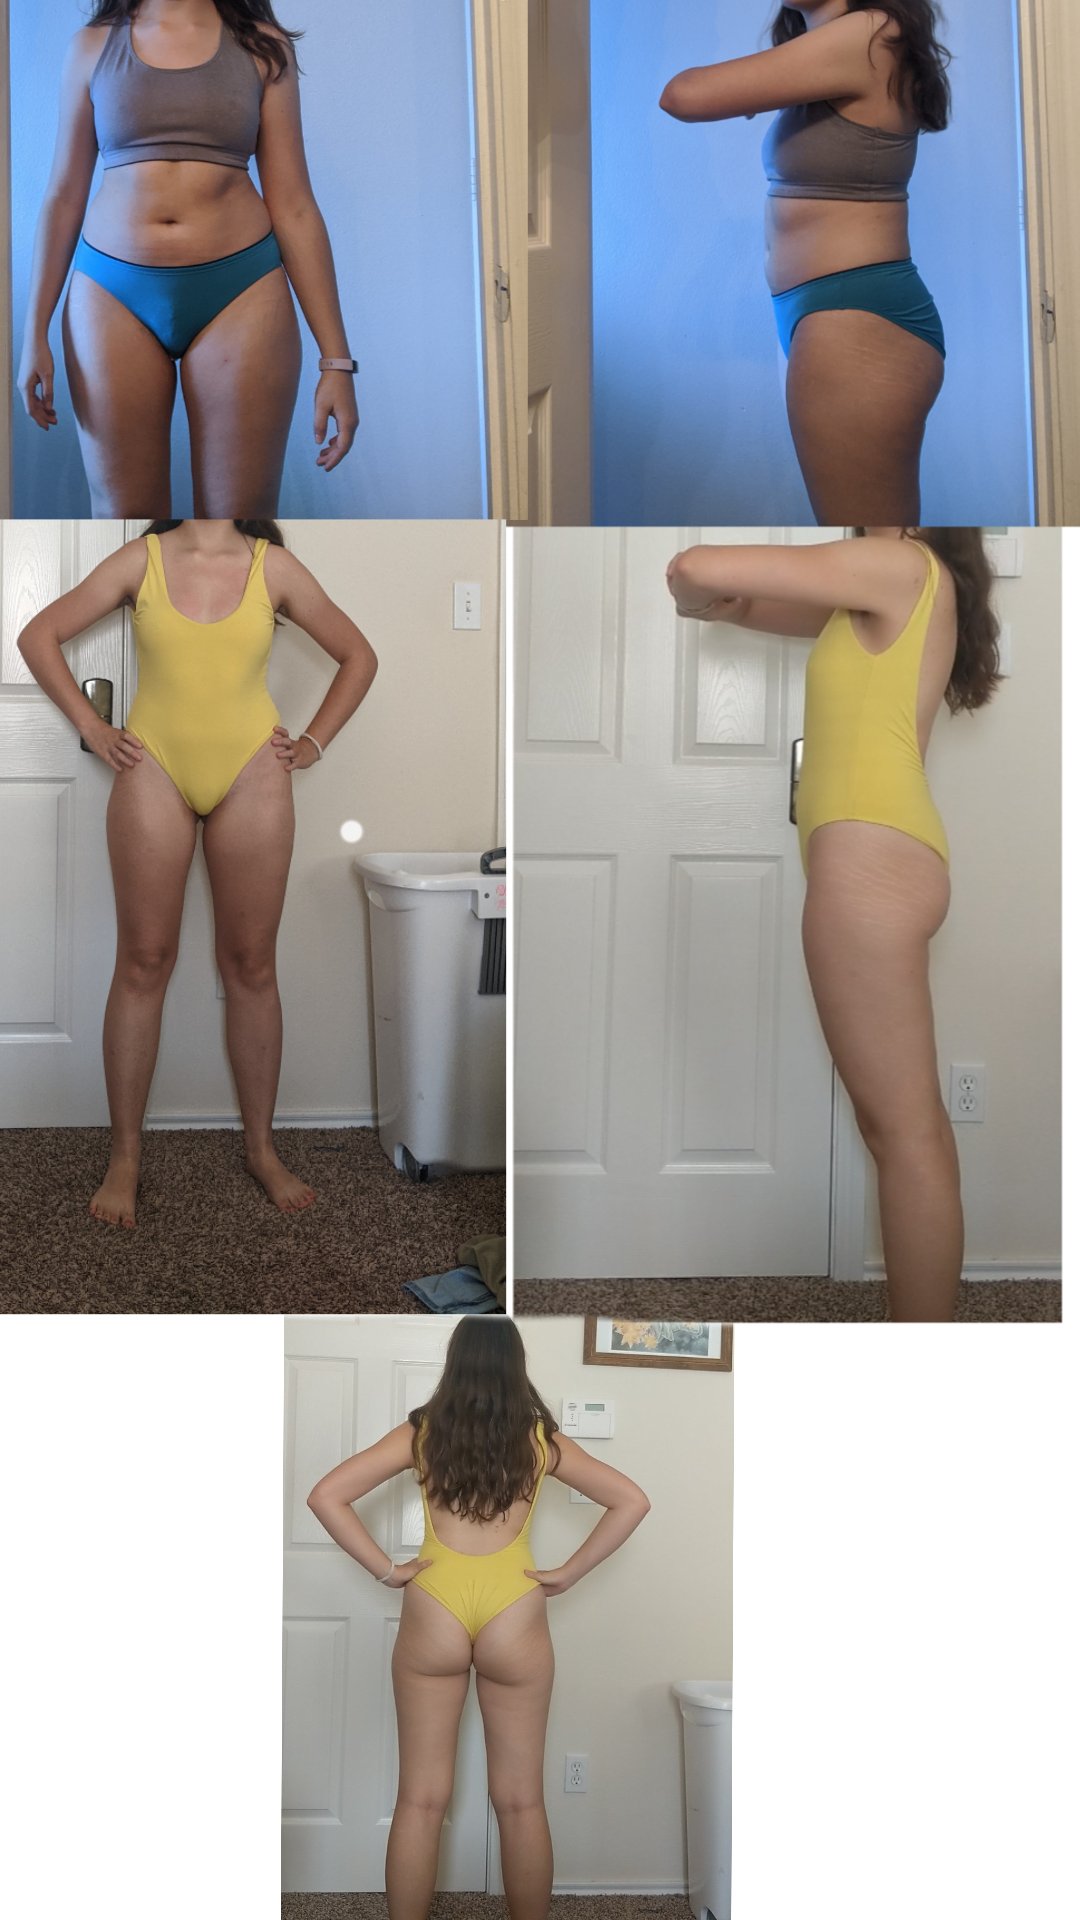 5 feet 4 Female Before and After 26 lbs Weight Loss 162 lbs to 136 lbs